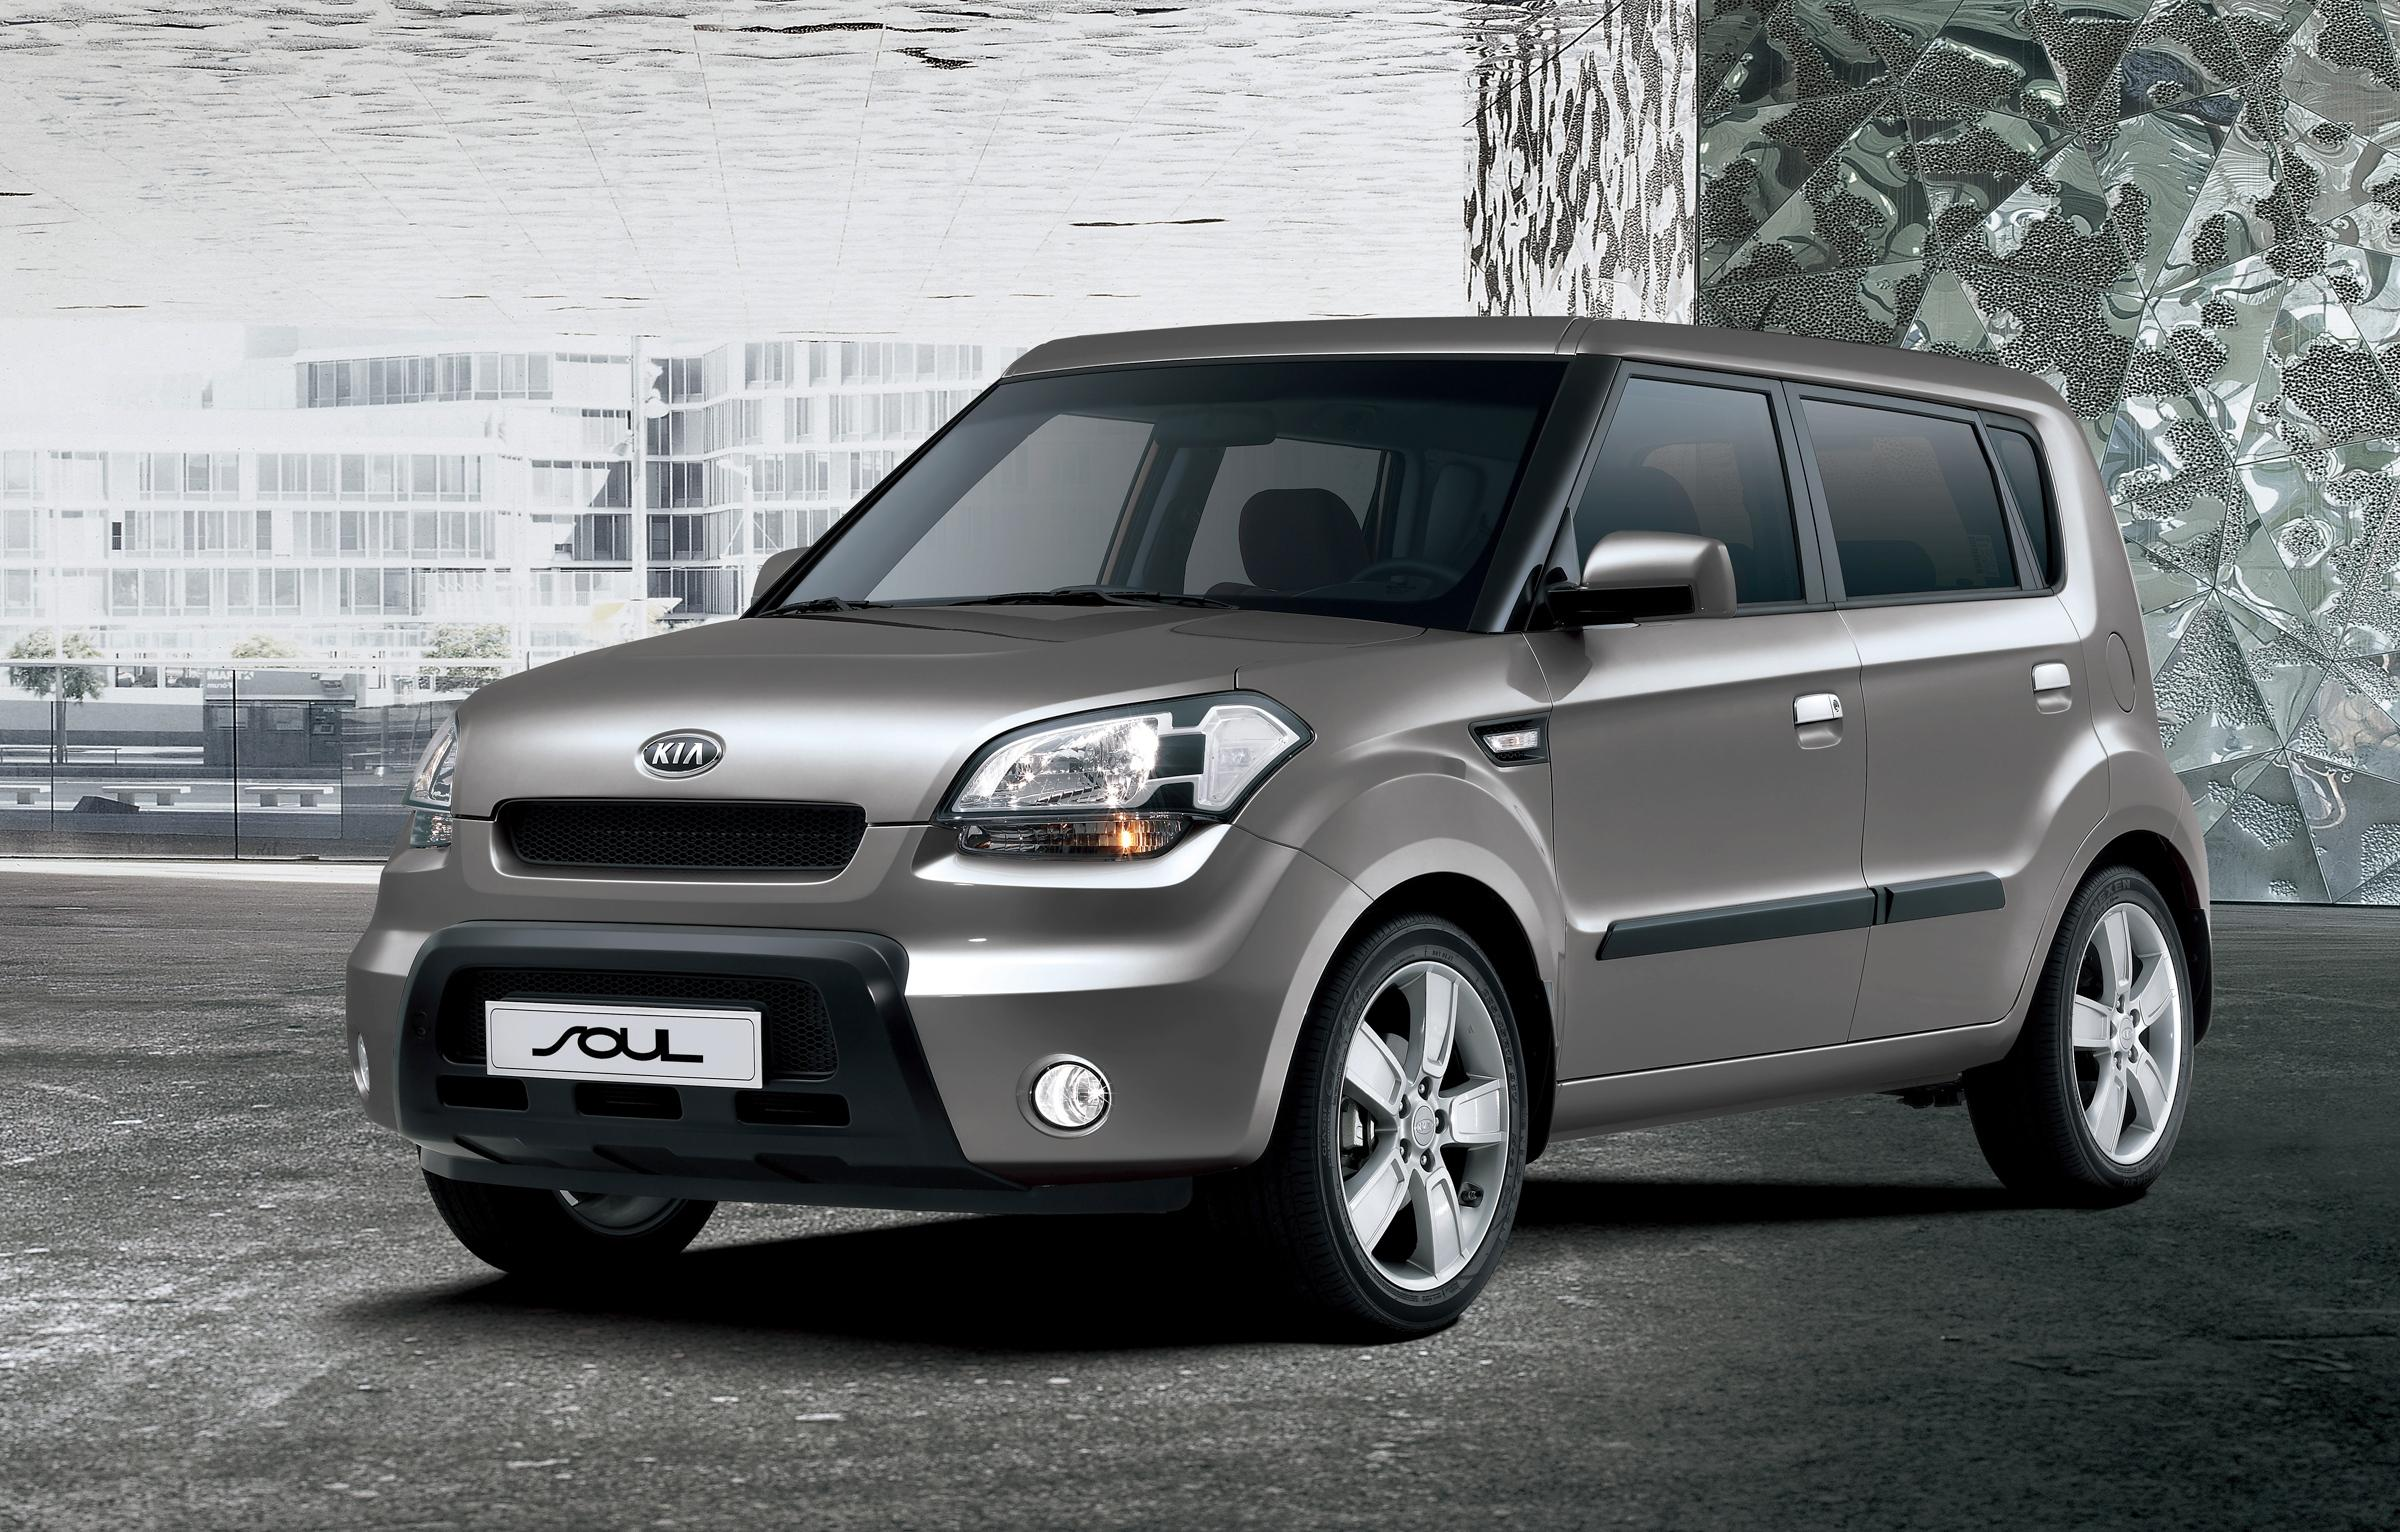 image photos city images stock kia photo car soul alamy